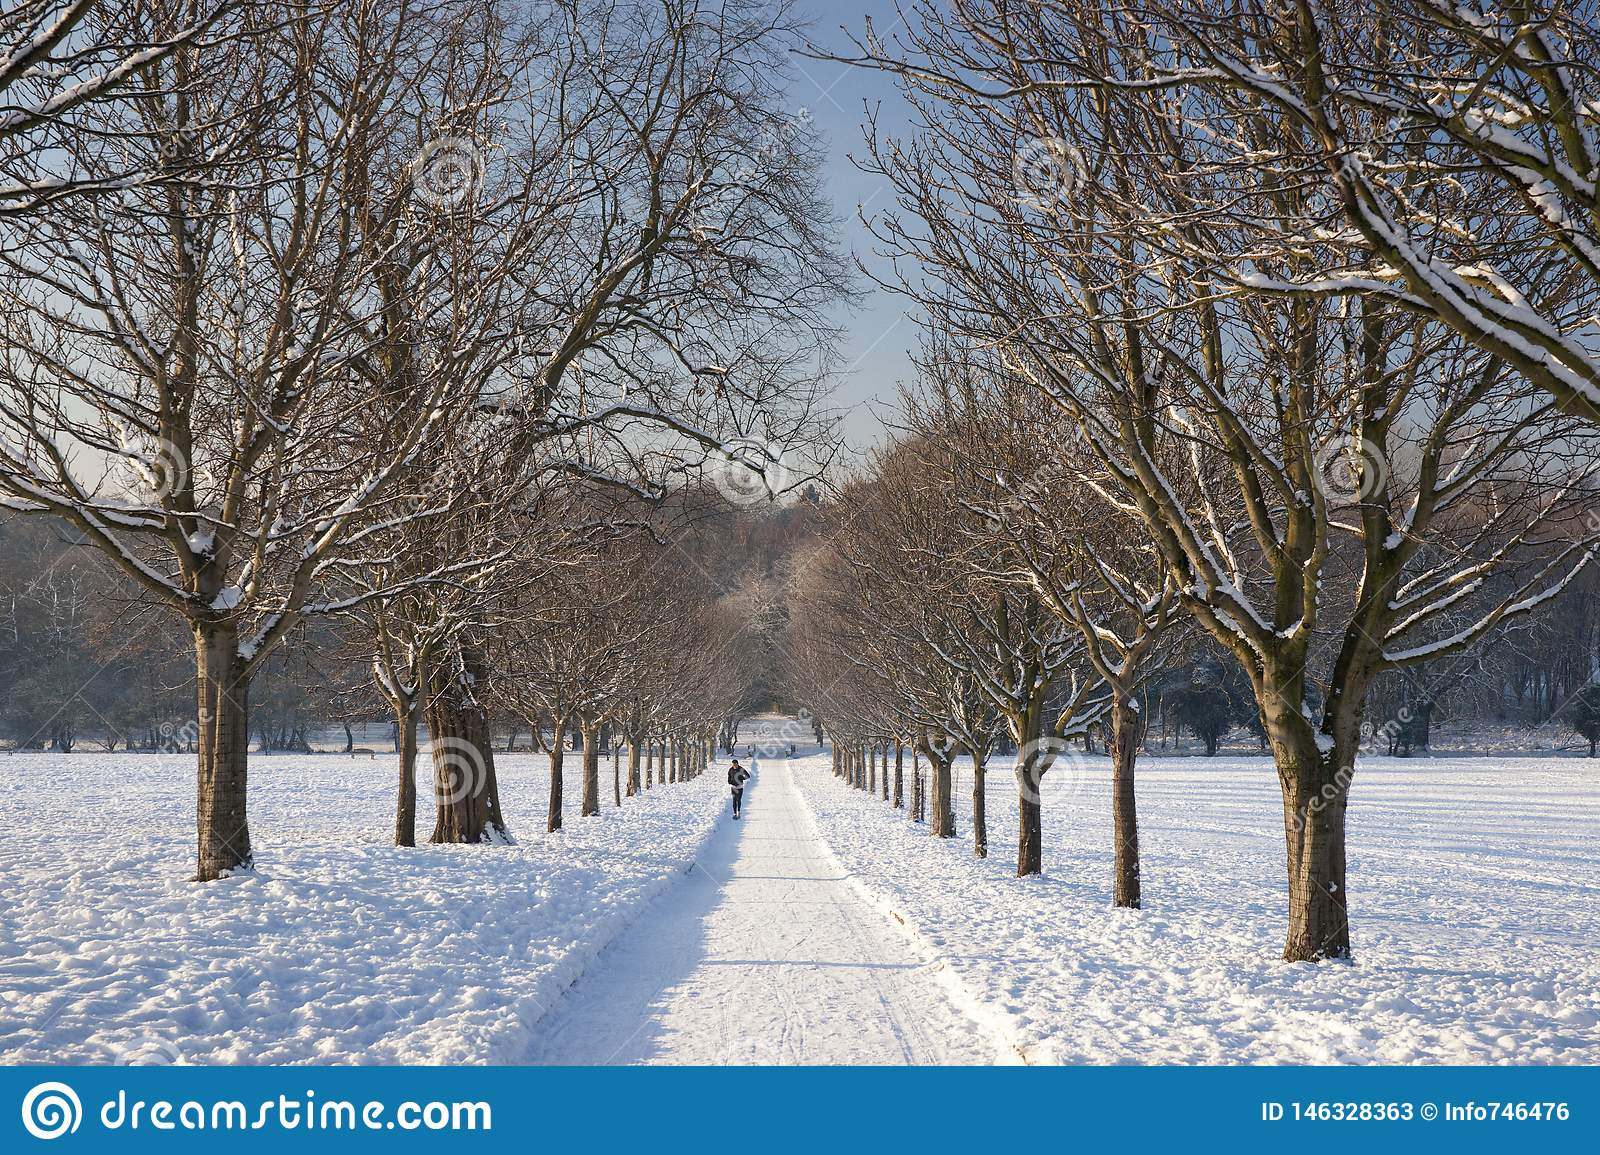 A view of the the tree avenue at the Elizabethan Wollaton Hall museum and gardens in the snow in winter in Nottingham,